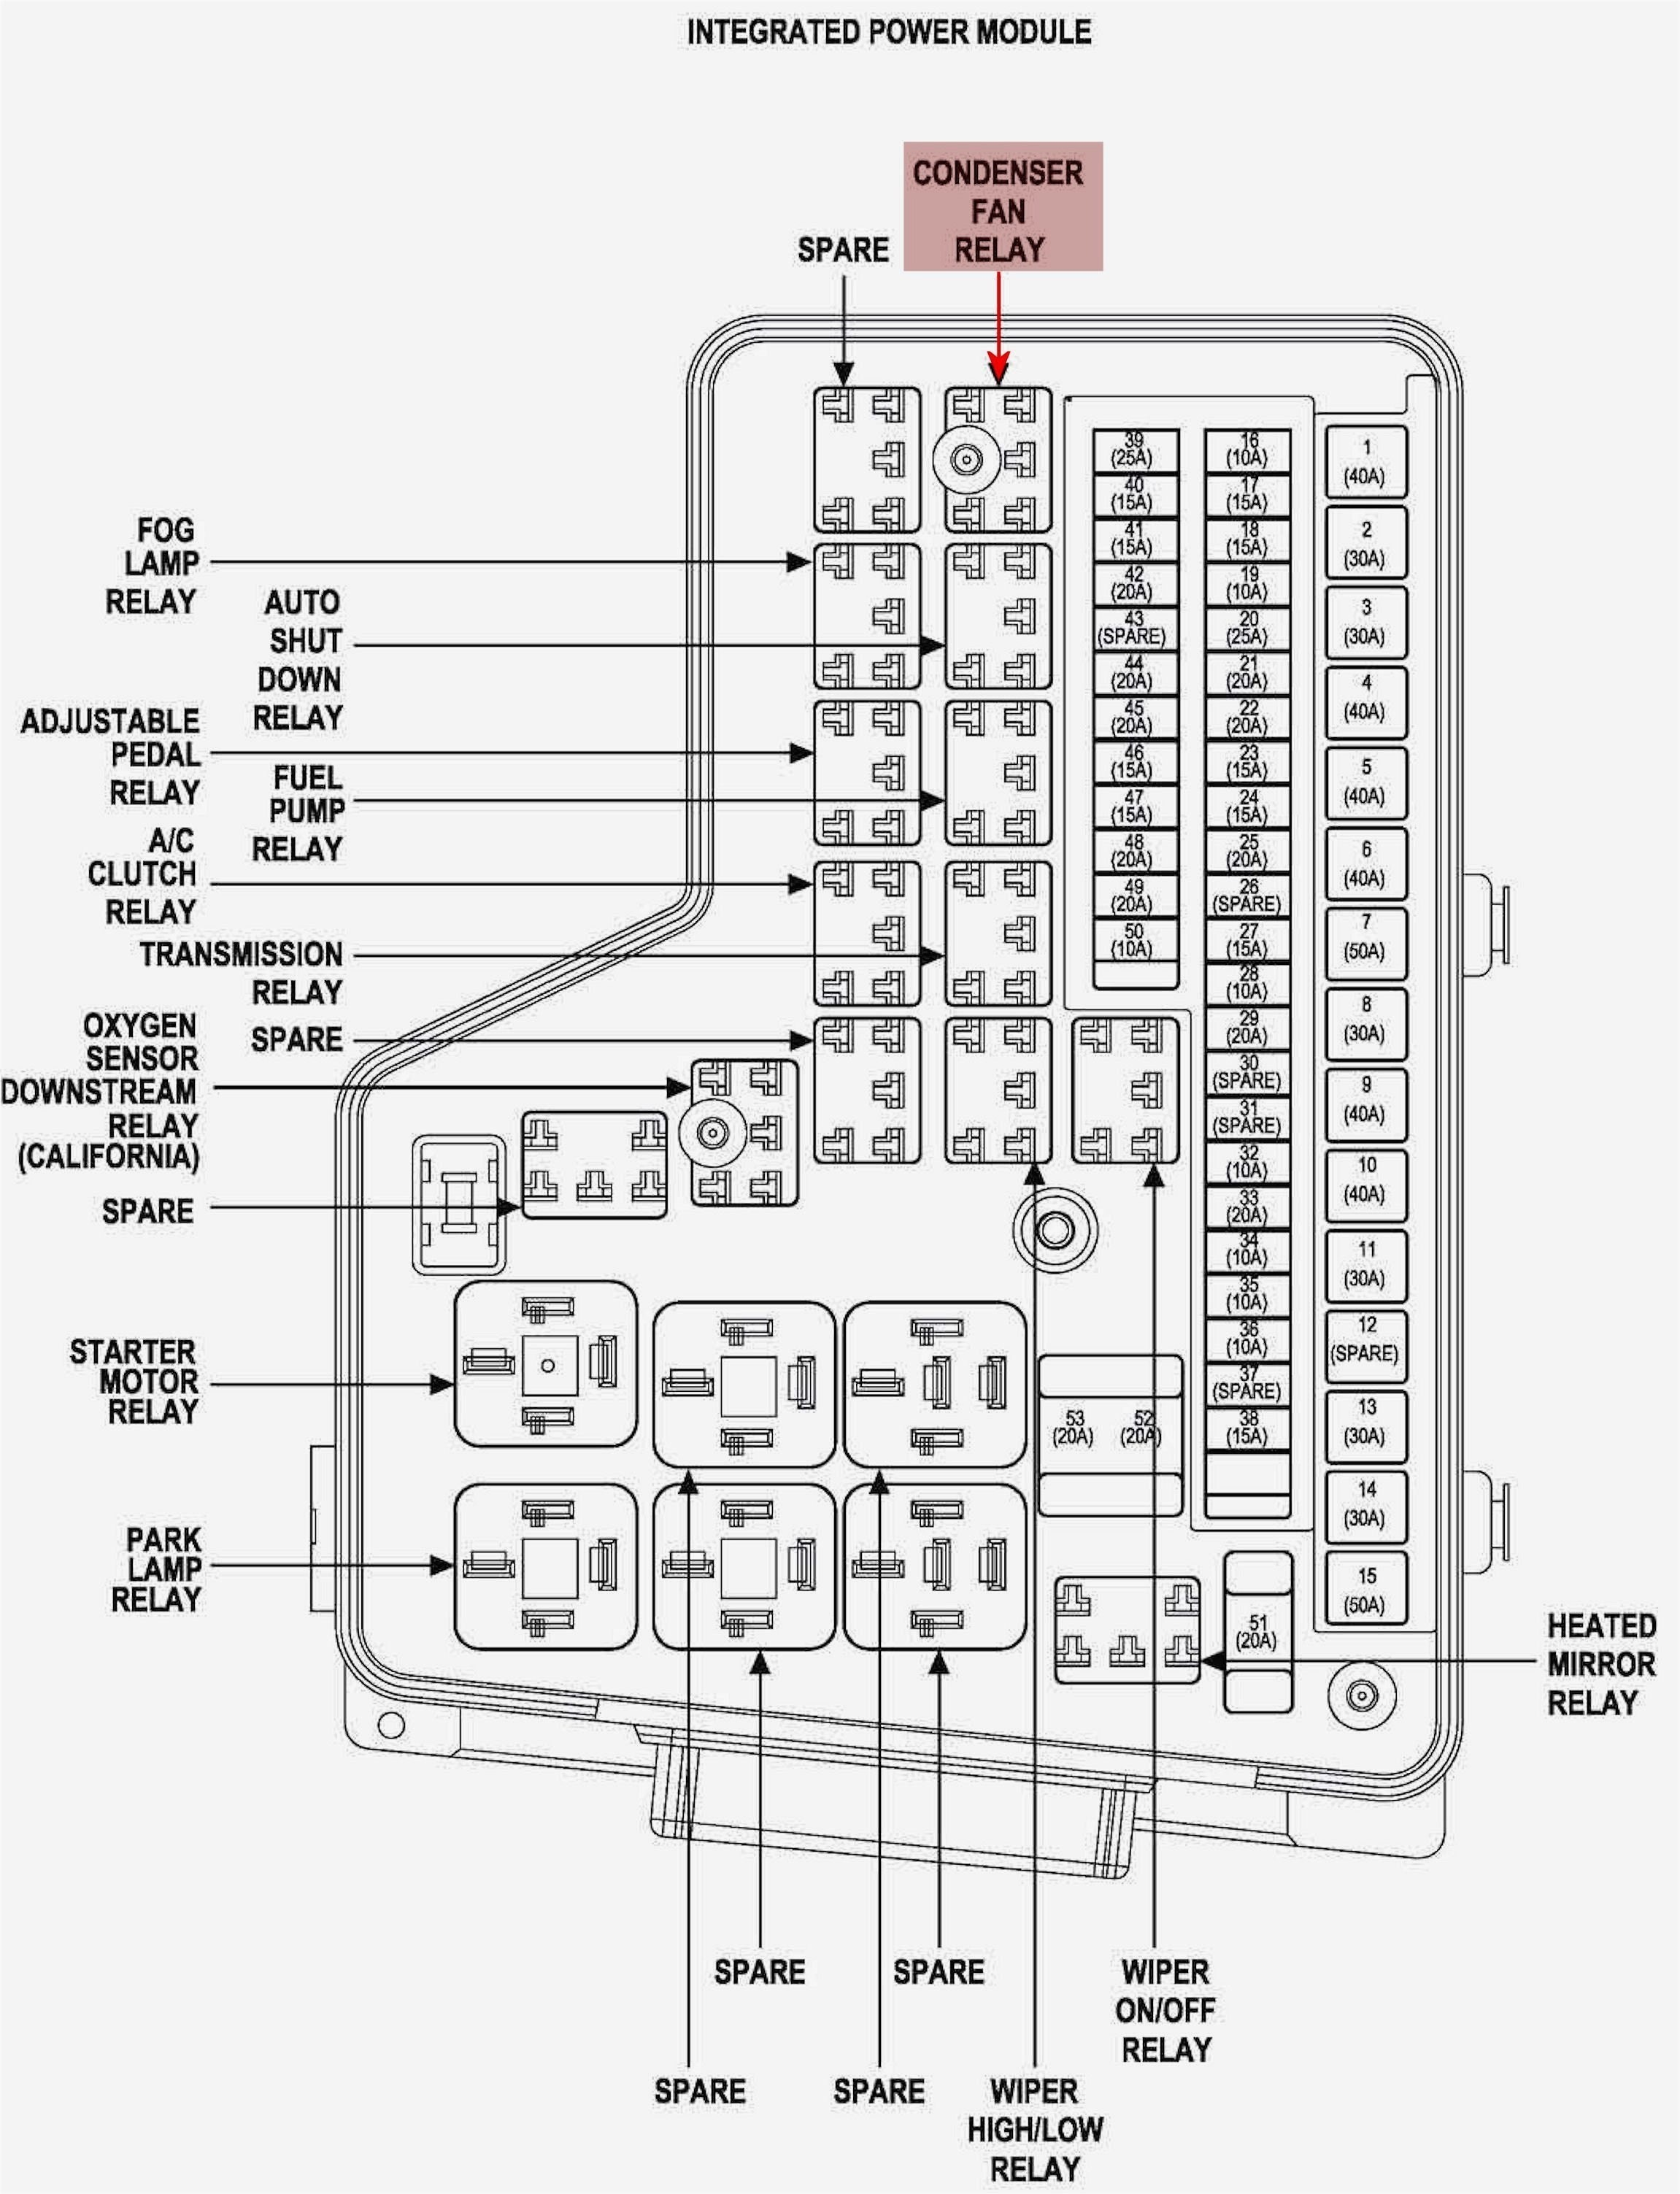 1999 Dodge Ram 1500 Brake Light Diagram 2014 Dodge Ram 1500 Fuse Diagram  Wiring Data